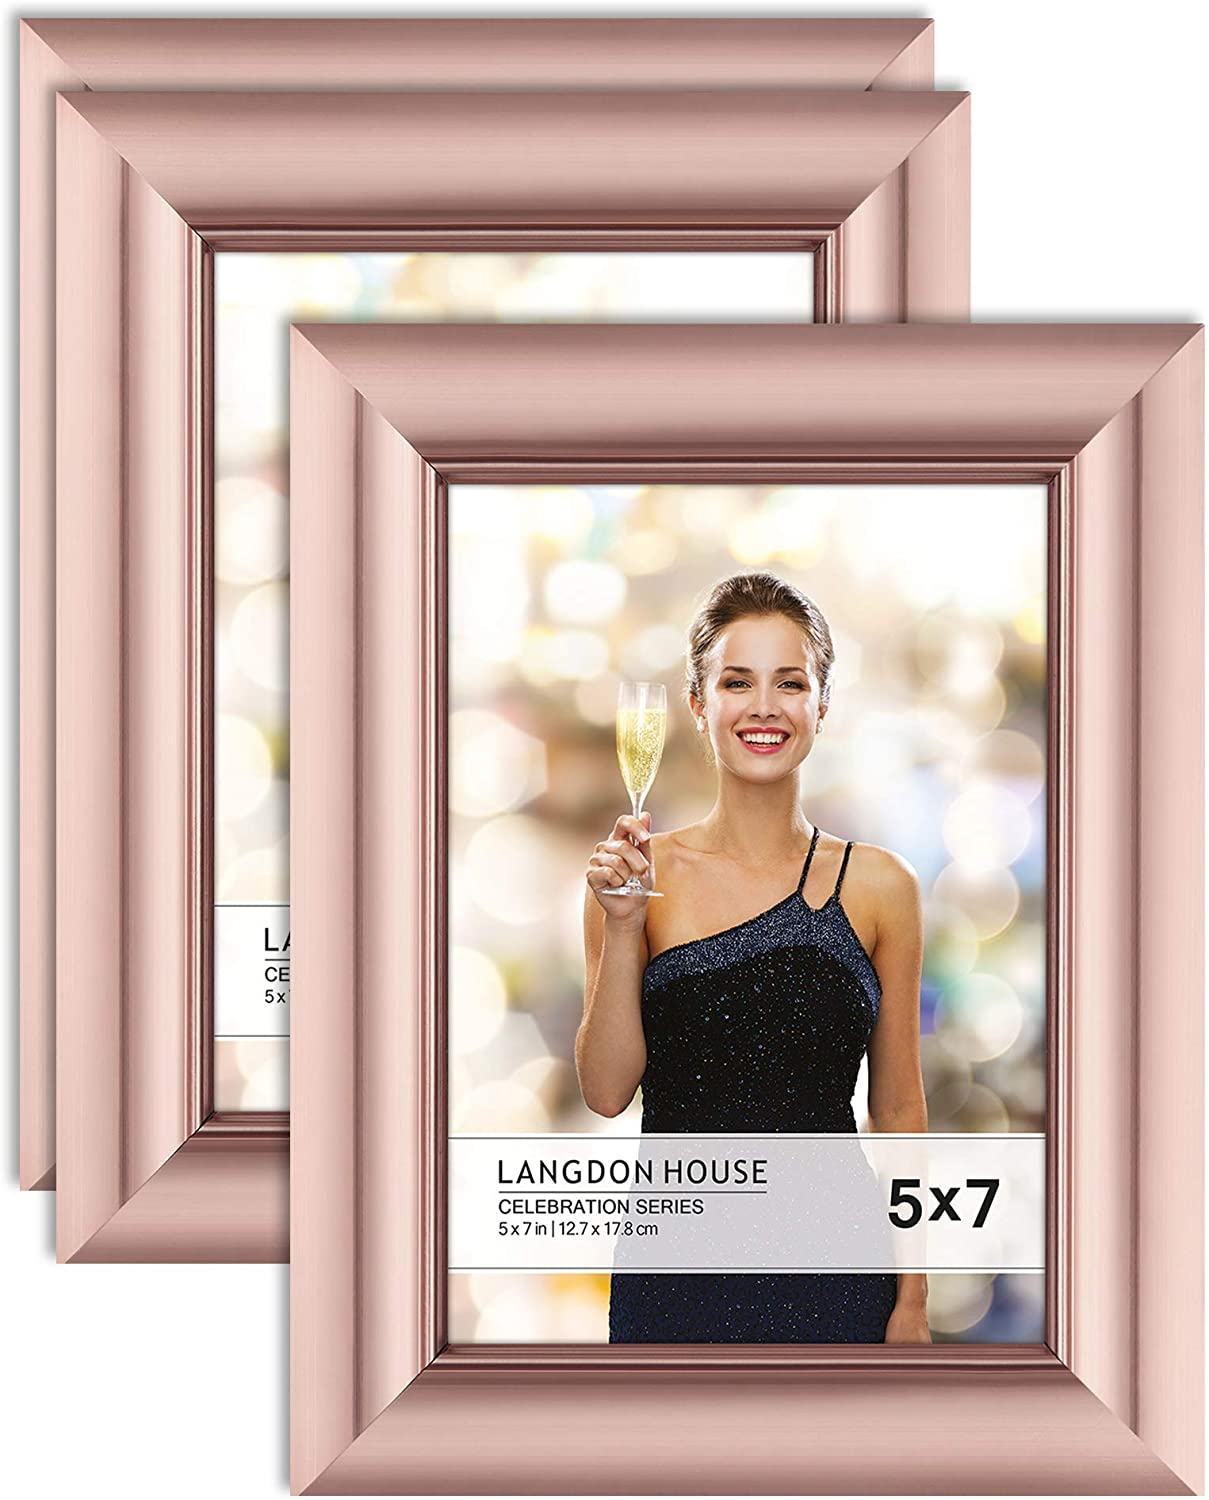 Langdon House 5x7 Picture Frames (Rose Gold, 3 Pack), Contemporary Glam Photo Frames 5 x 7, Wall Mount or Table Top, Celebration Collection